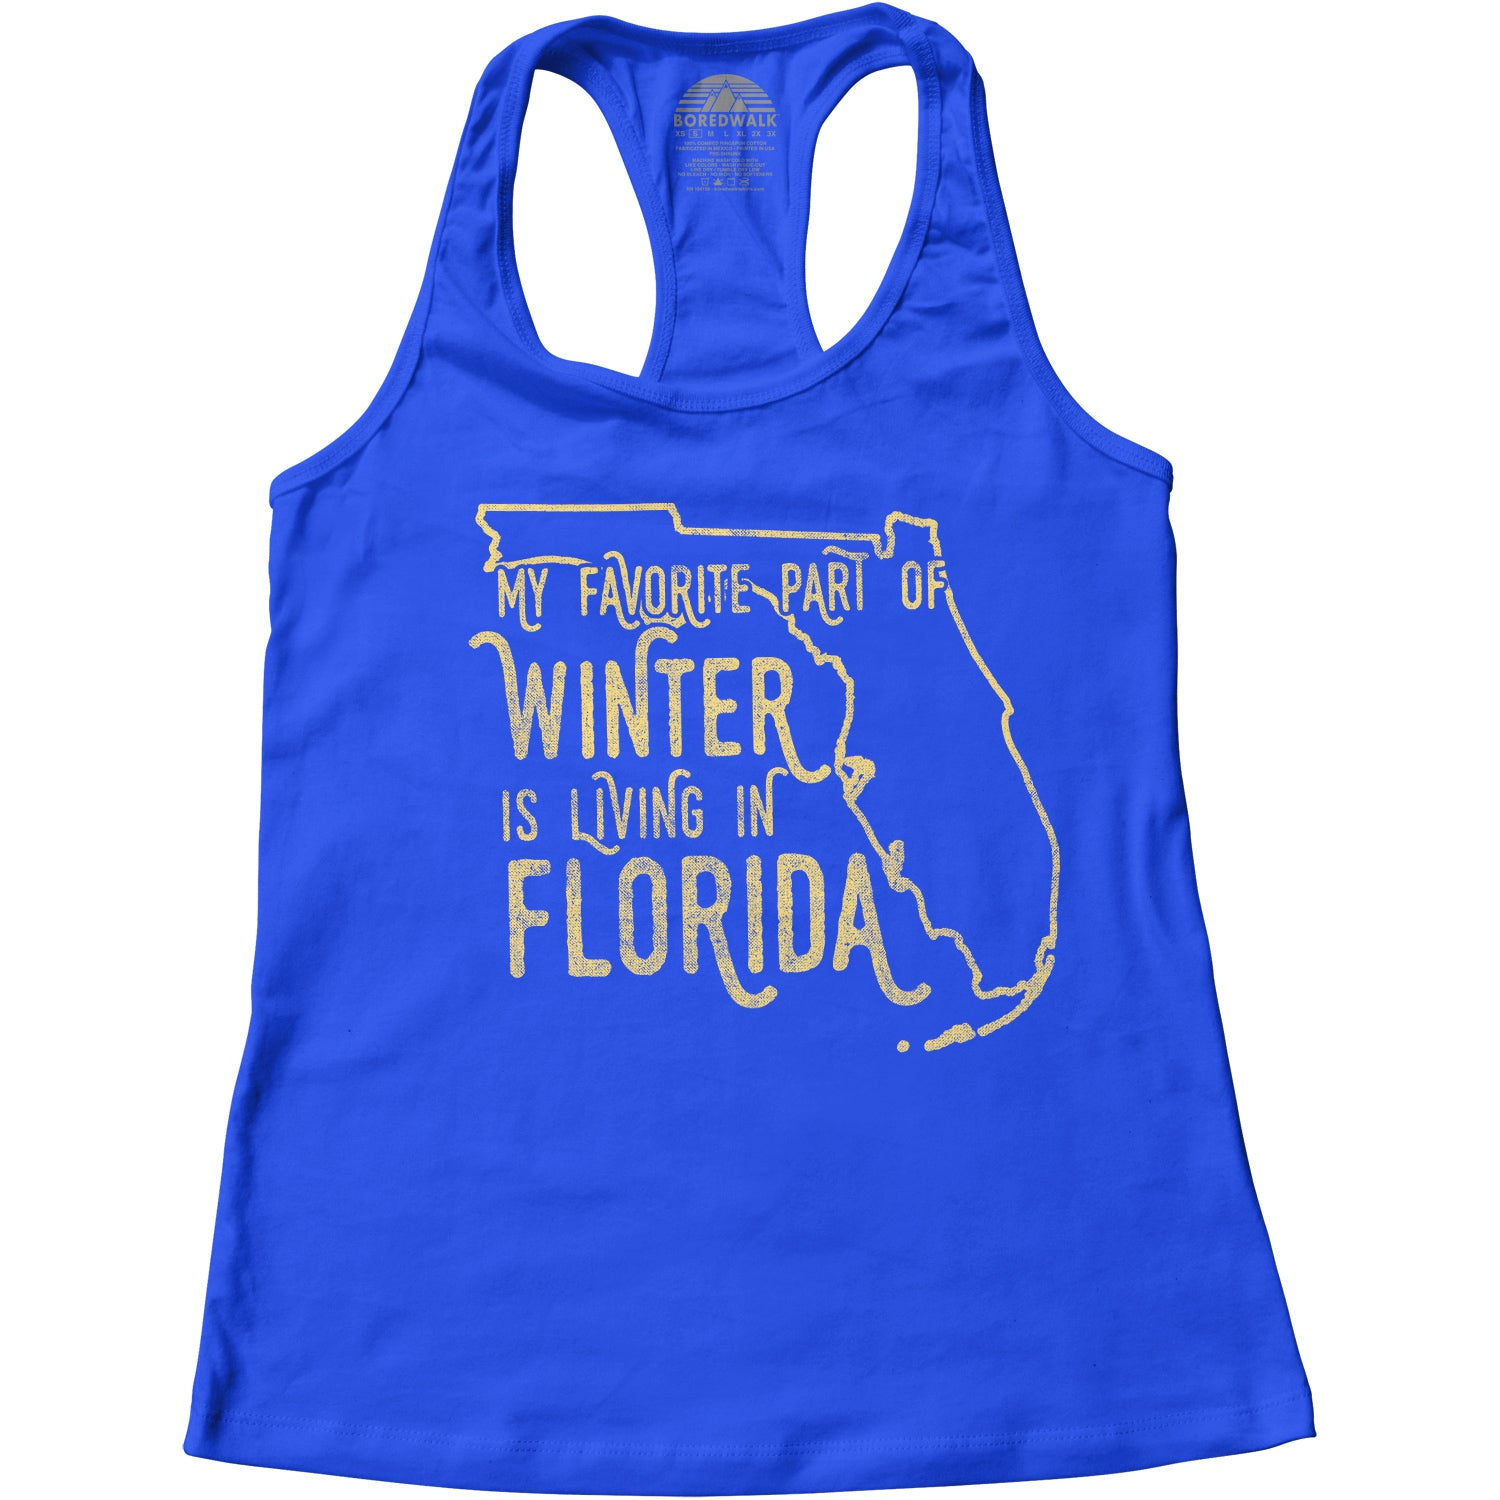 Women's My Favorite Part of Winter is Living in Florida Racerback Tank Top